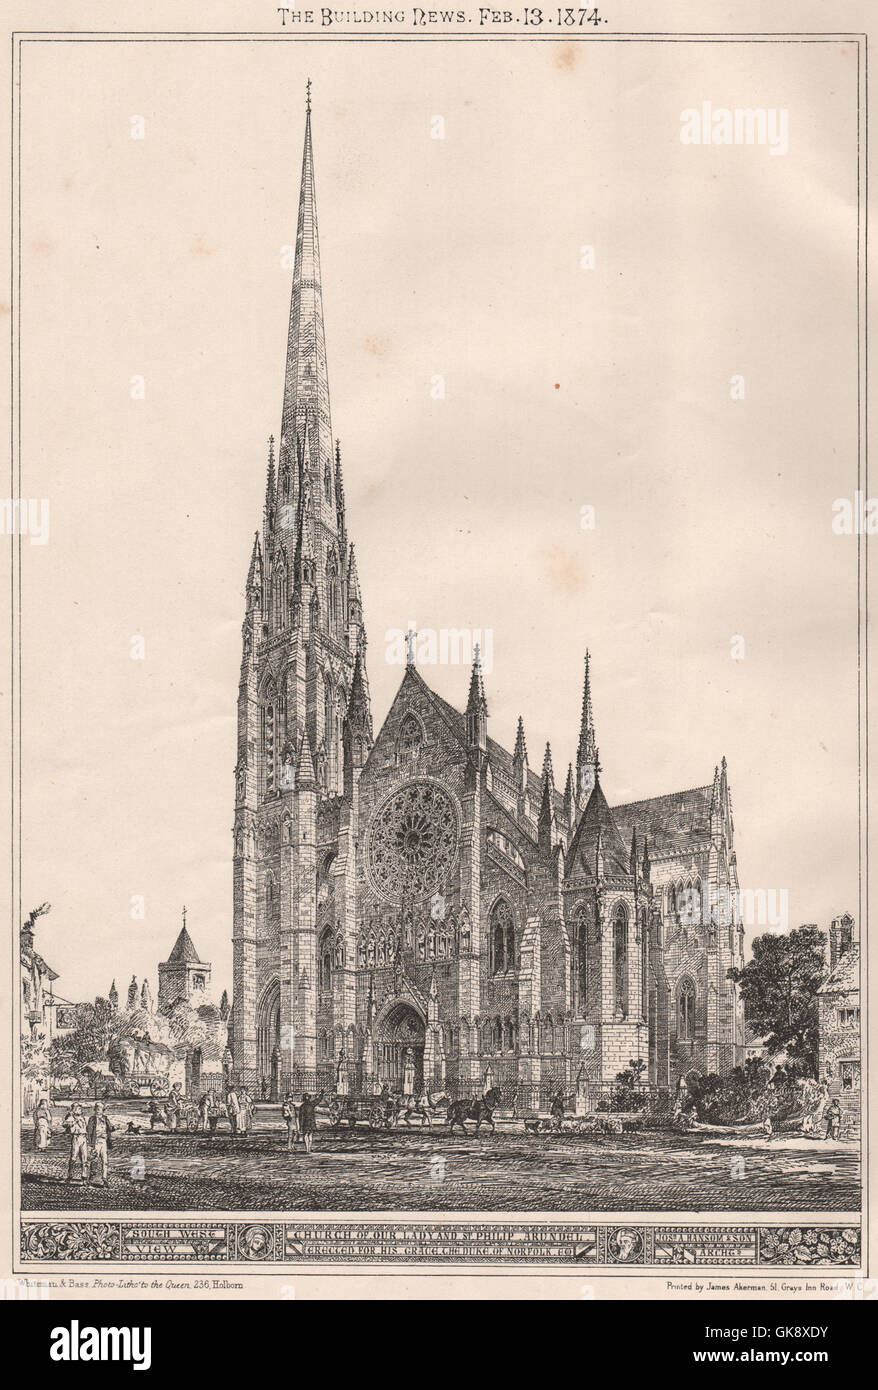 Church of our Lady & St. Philip, Arundel, built for the Duke of Norfolk, 1874 - Stock Image